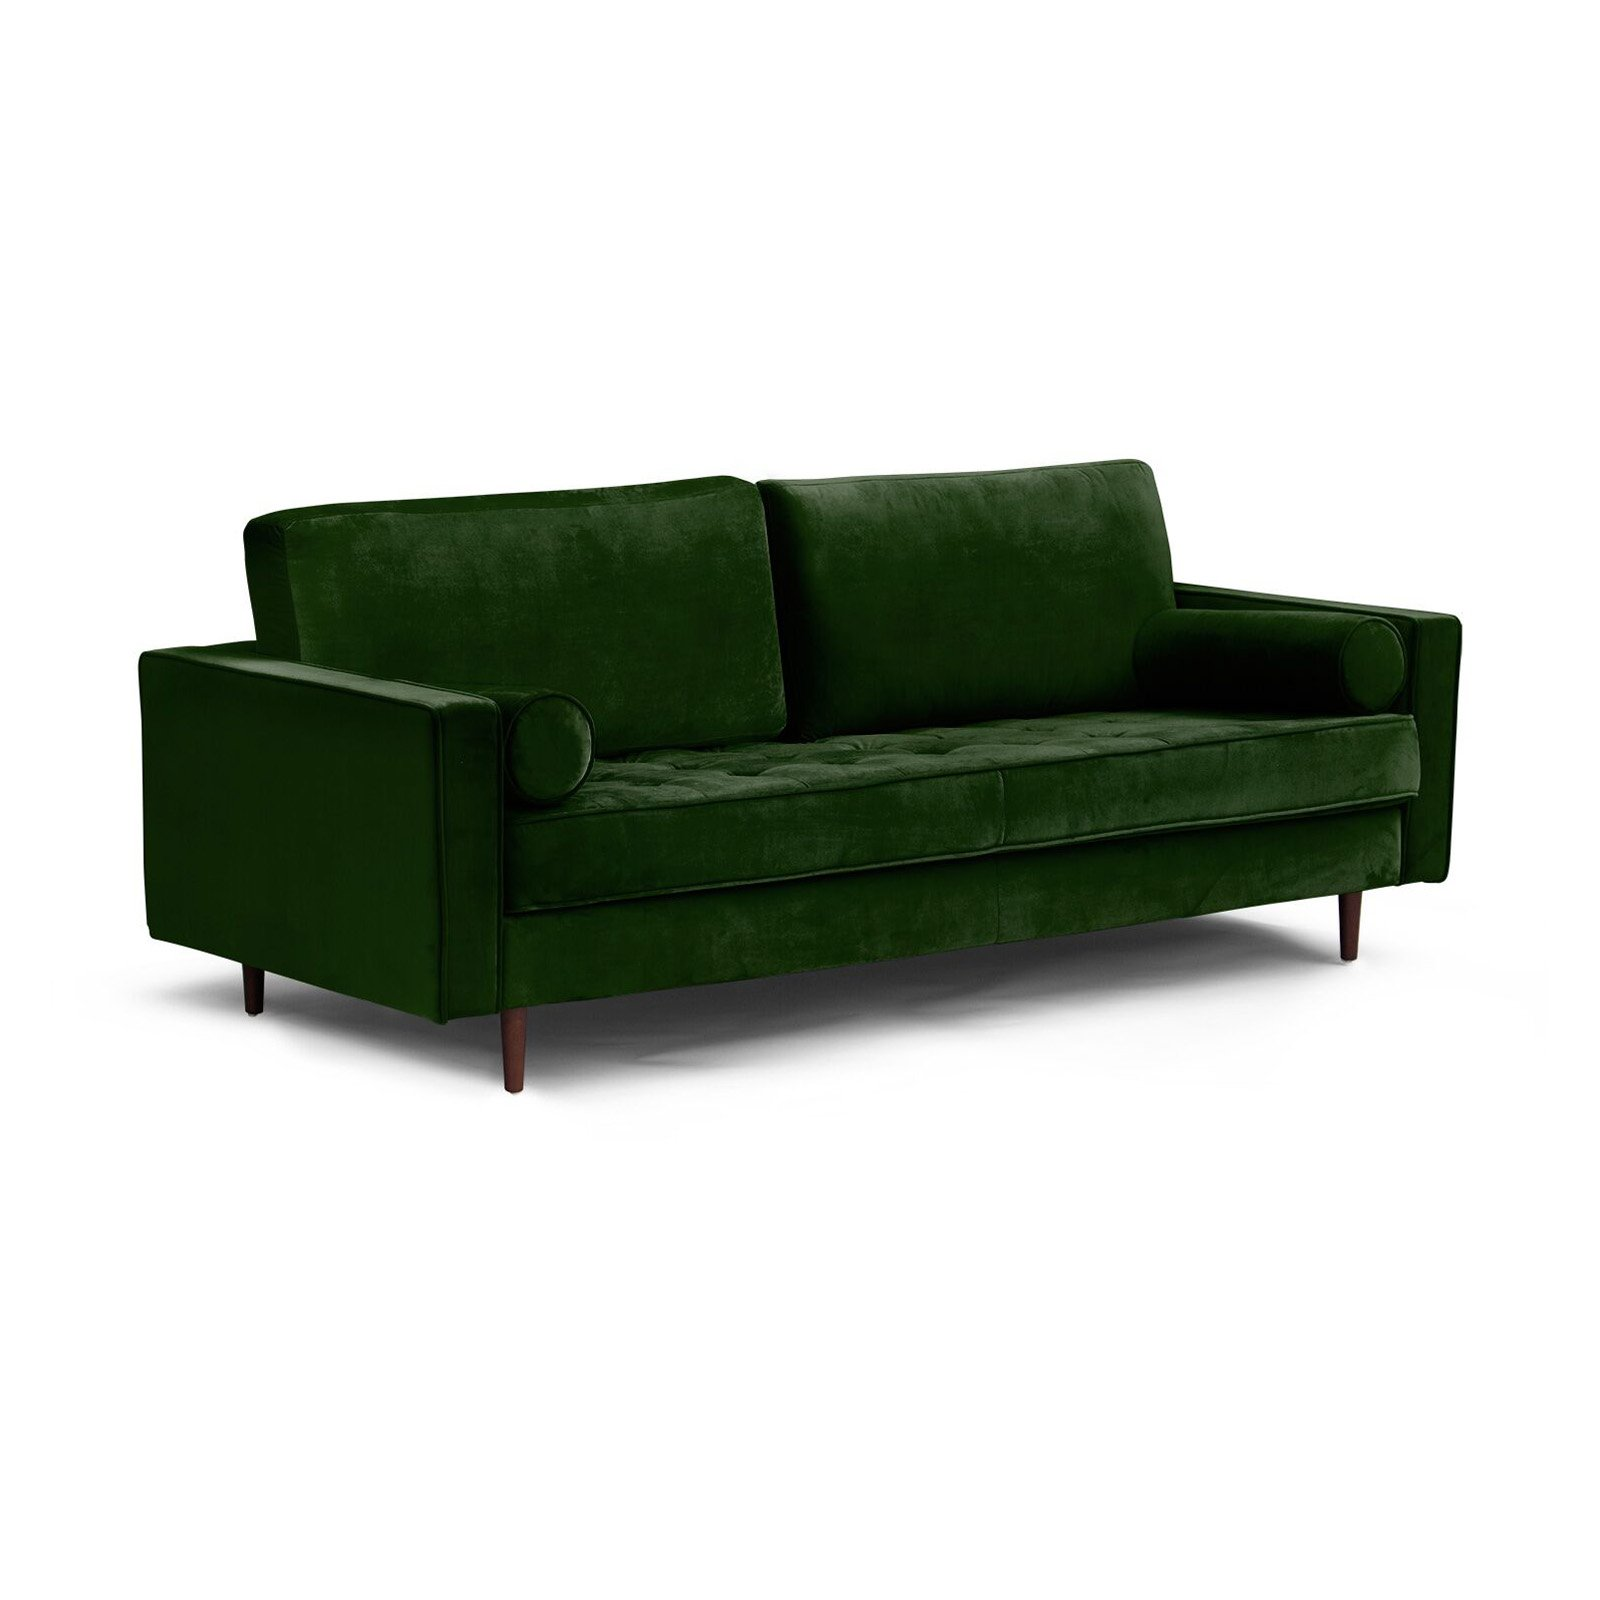 Aeon Furniture Bloomfiled Modern Sofa With Bolster Pillows